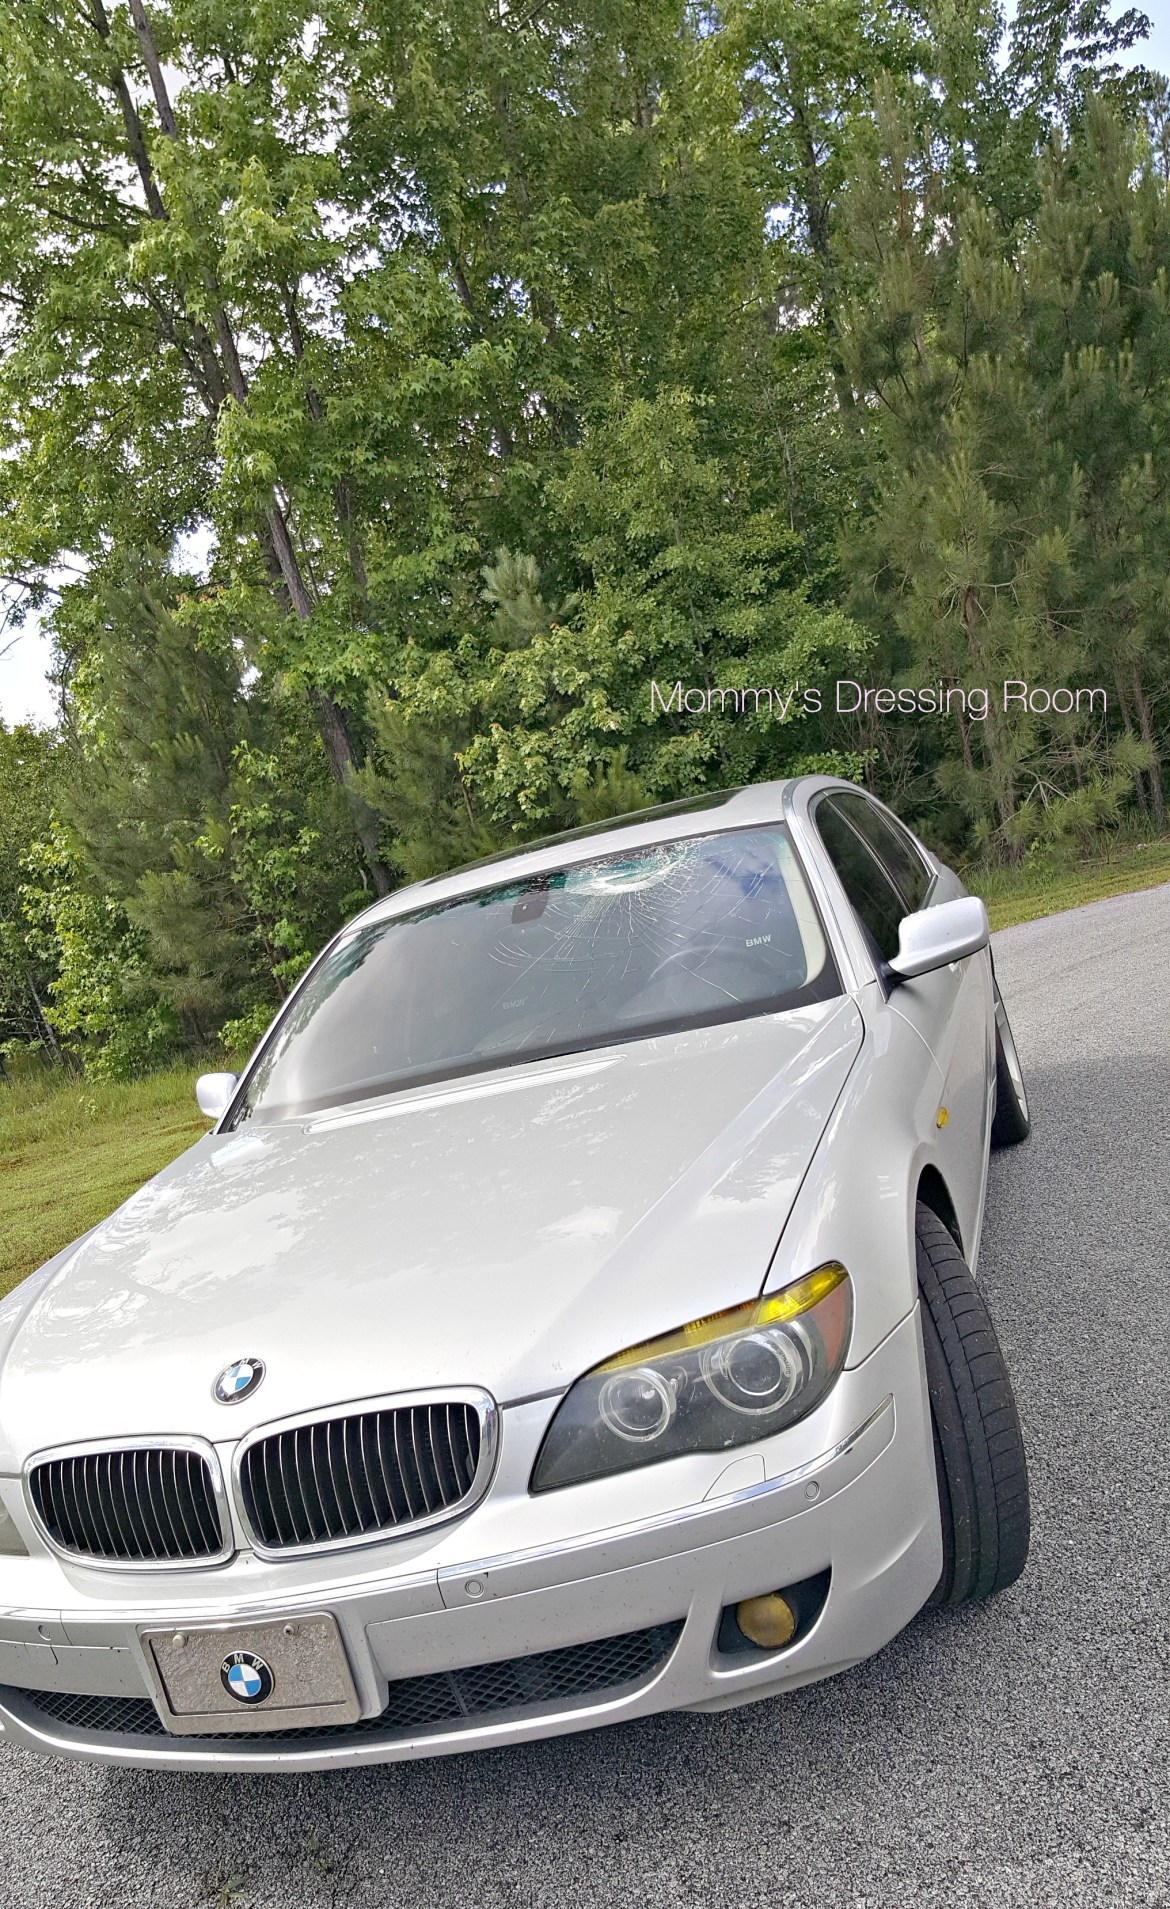 turkey-safelight-country road-bmw-windshield-virginia